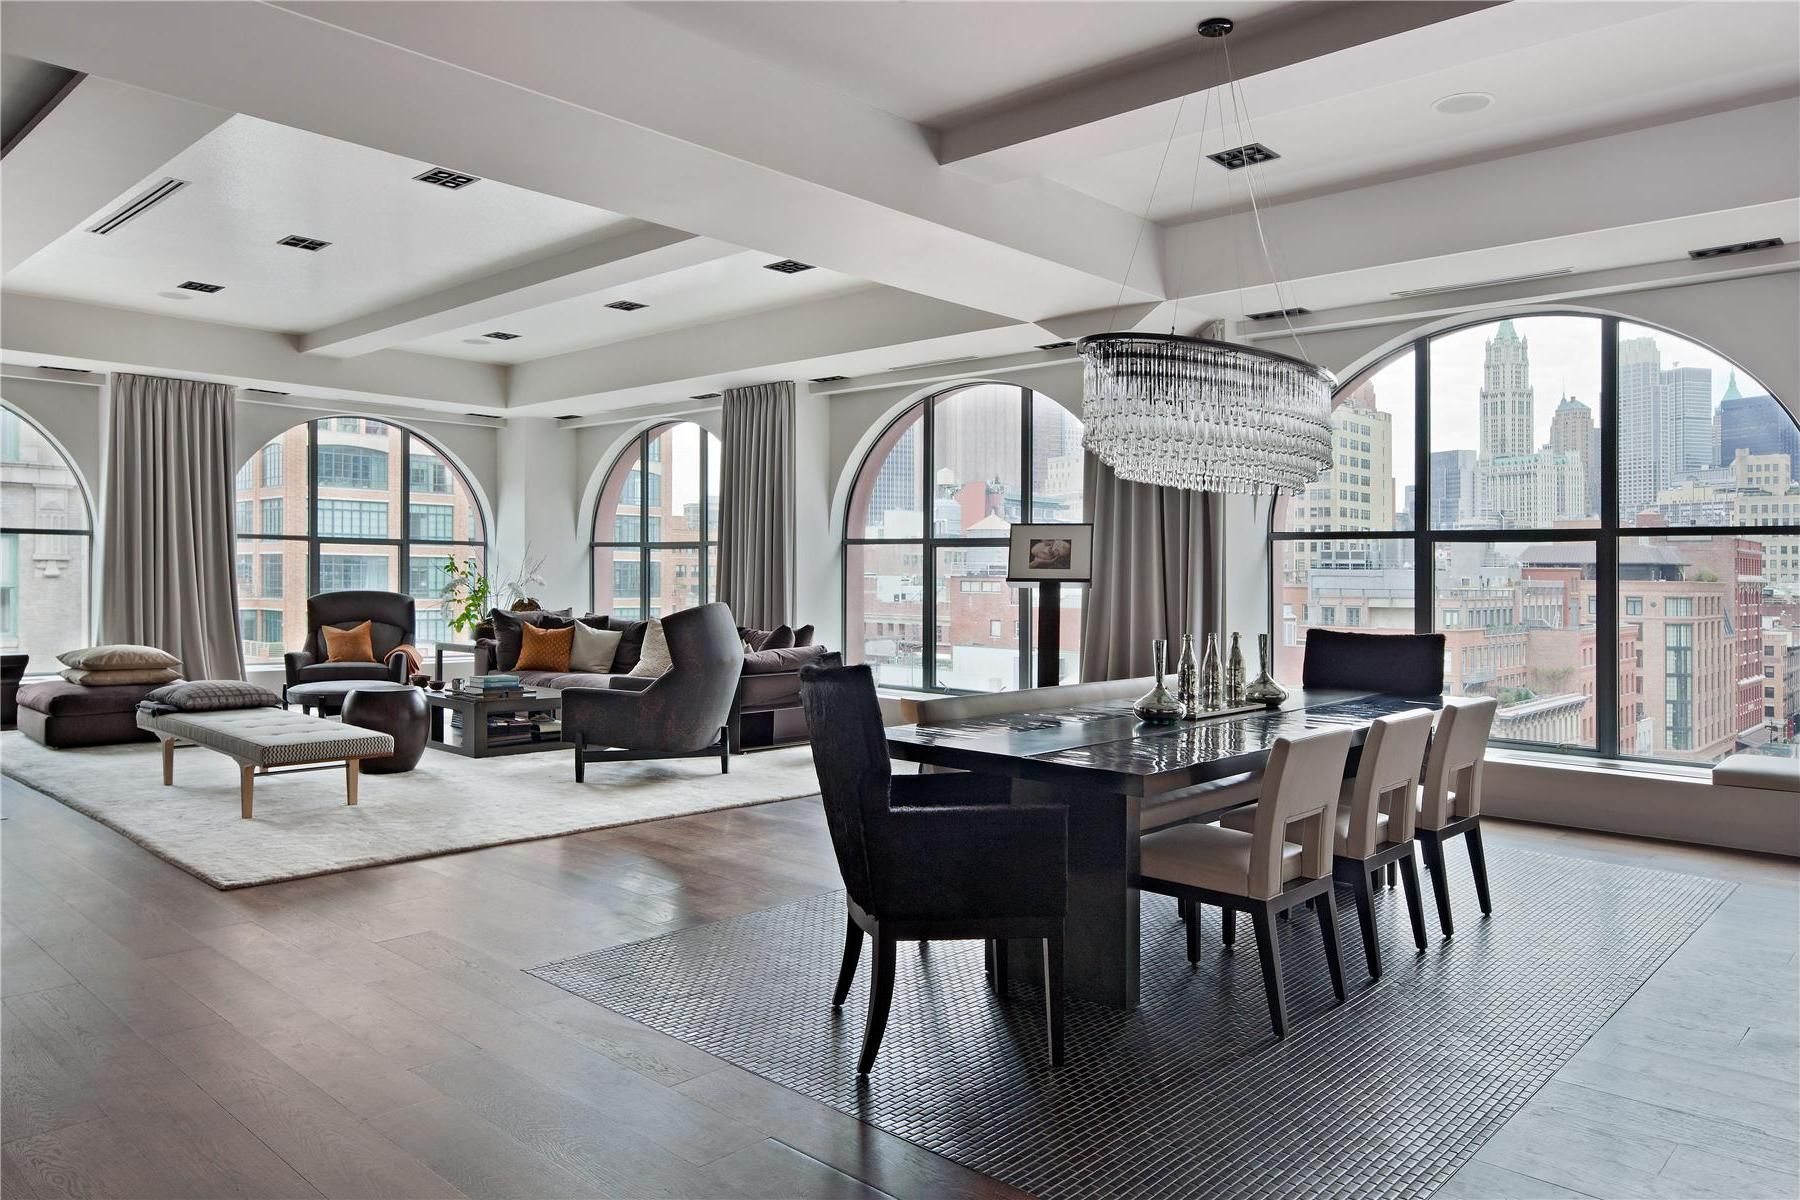 Luxury Apartments In Tribeca Nyc TheApartment - New york loft apartments